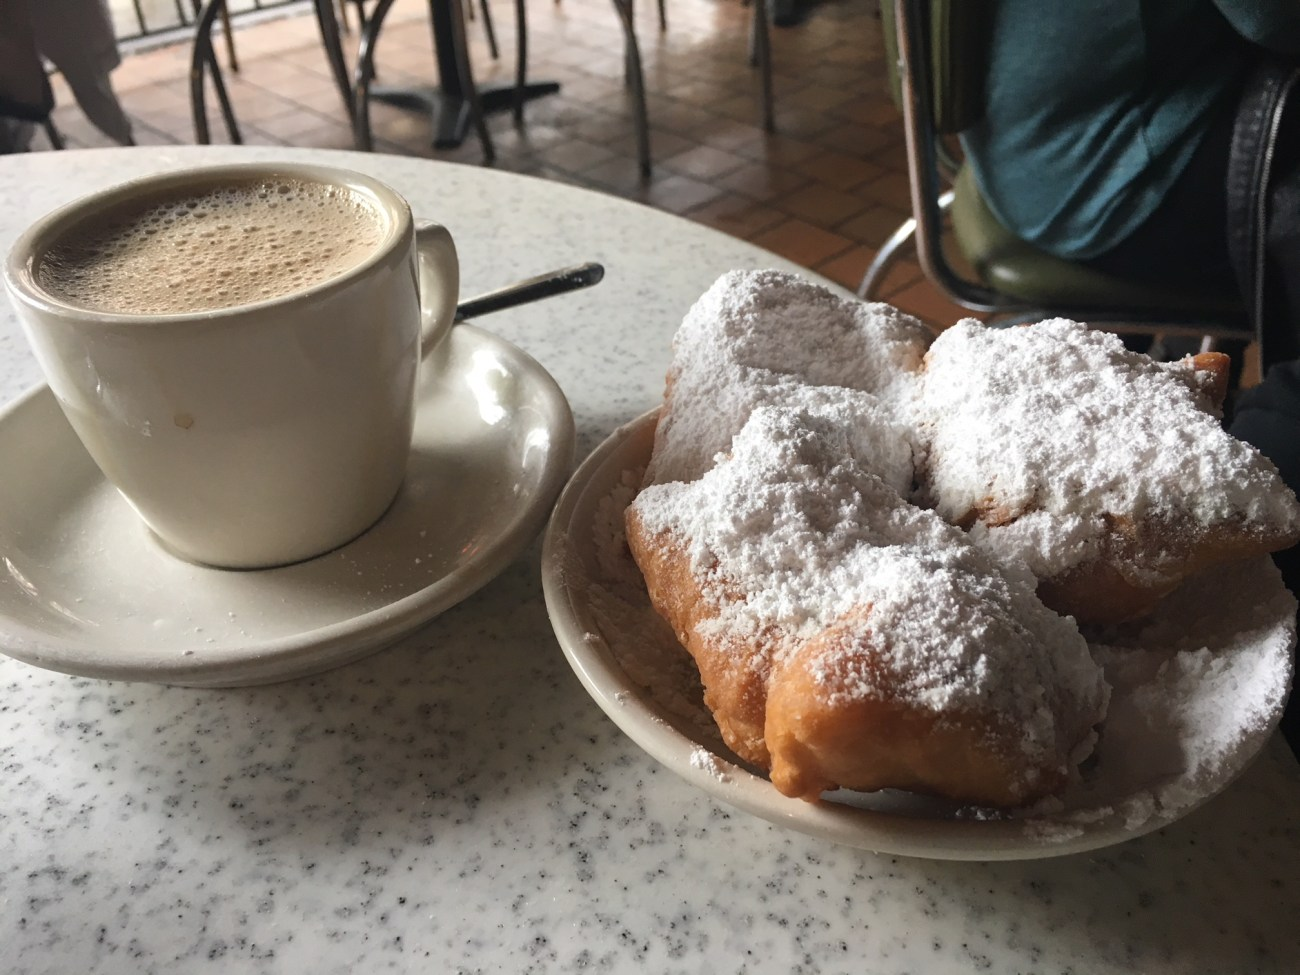 Pic of beignets and cafe au lait at Cafe Du Monde in New Orleans // The Nothing New Year Redux, Celebrating a Year of Less (minimalism, decluttering, simple living, simplicity, intentional living, mindfulness)